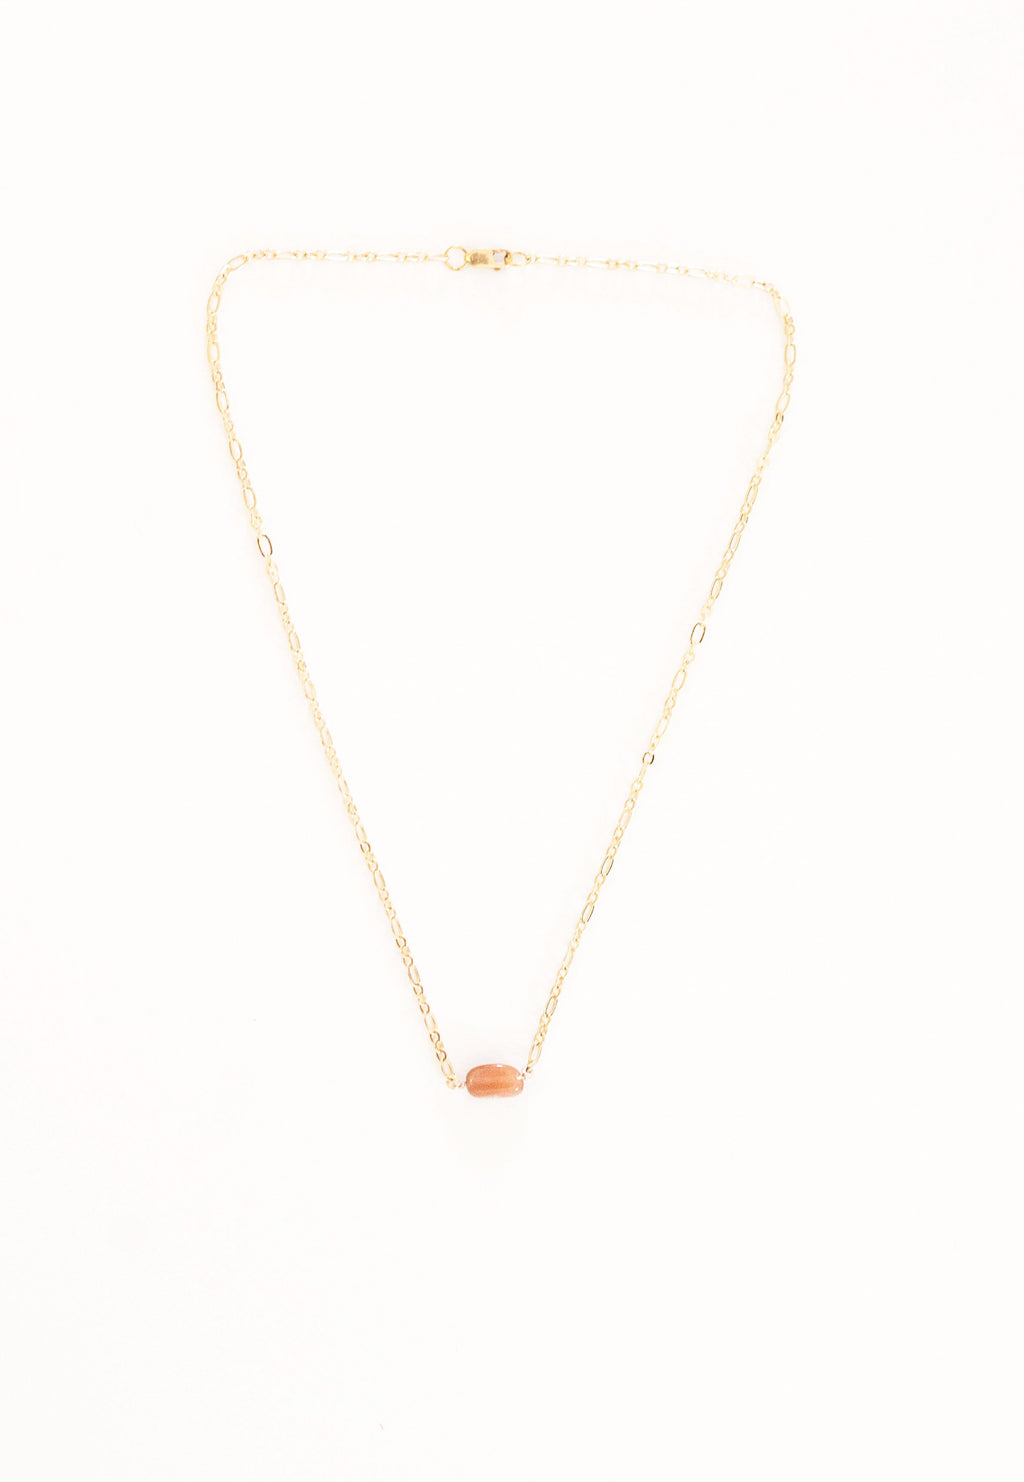 Peach Moonstone crystal necklace